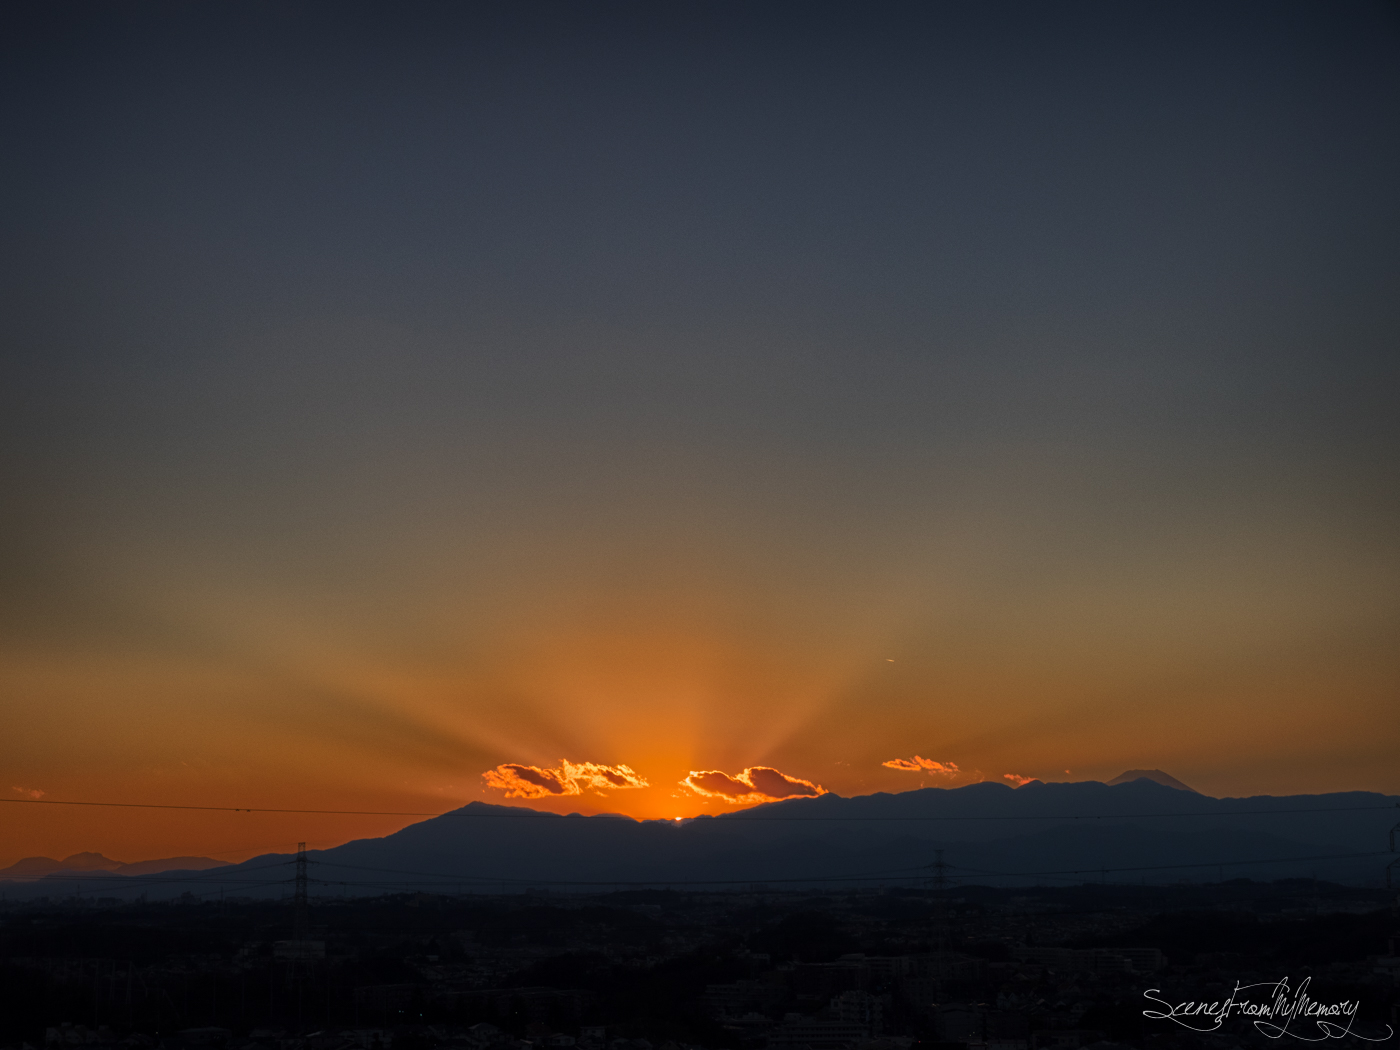 First Sunset And Mt.Fuji